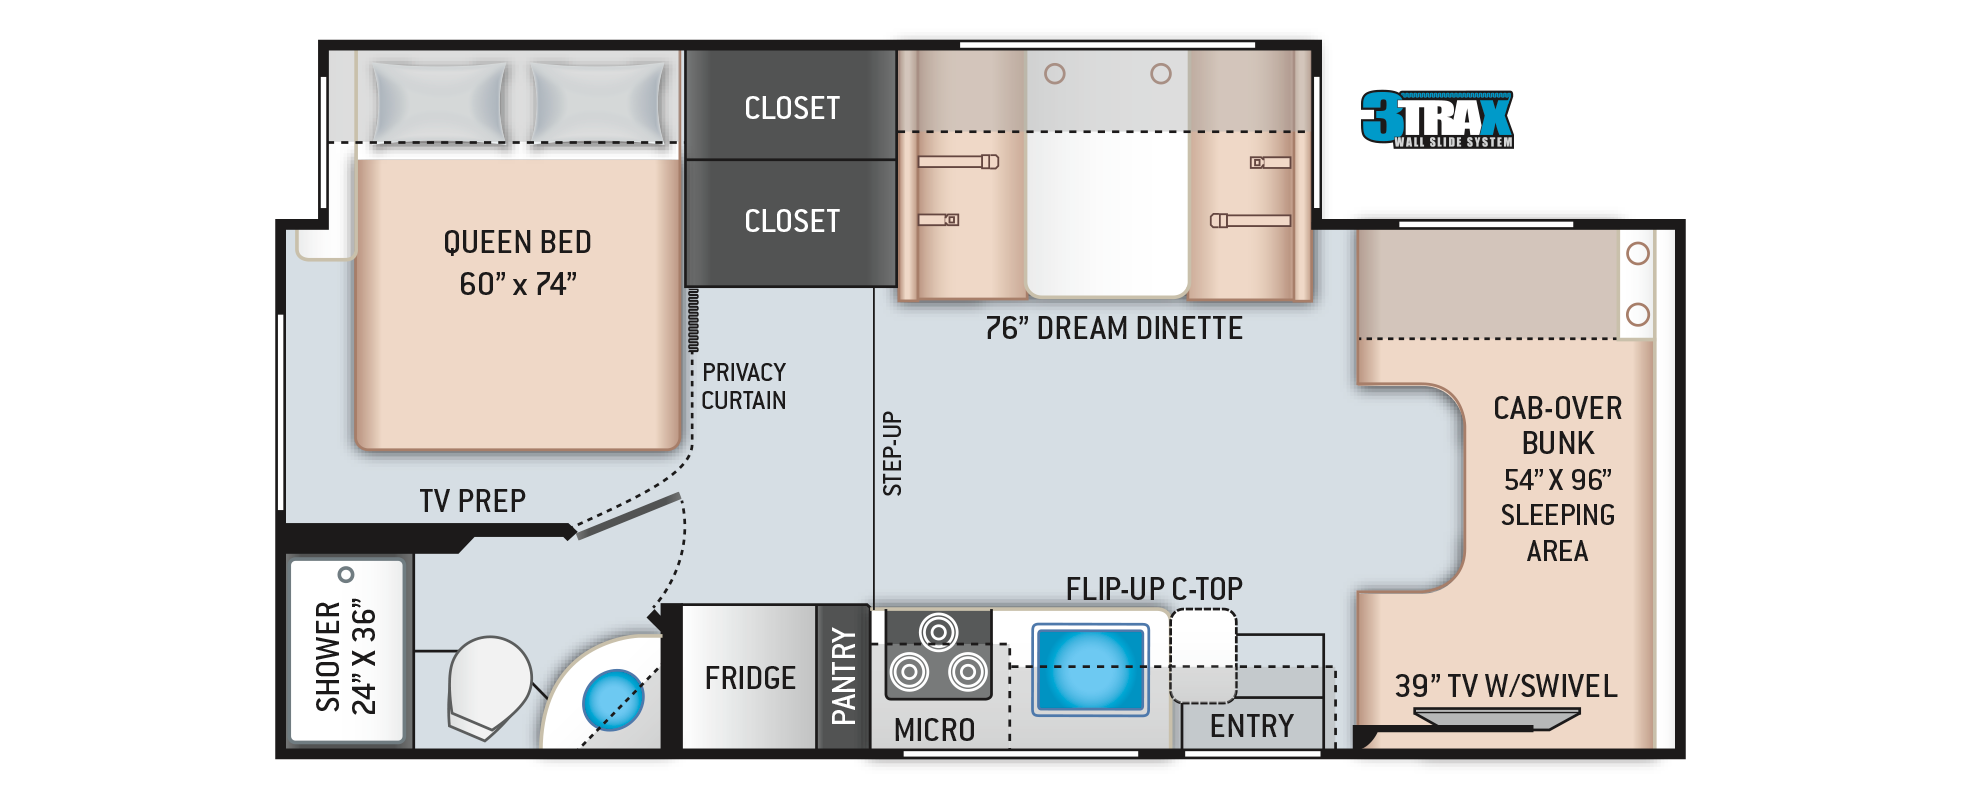 Freedom Elite Class C RV 24HE Floor Plan